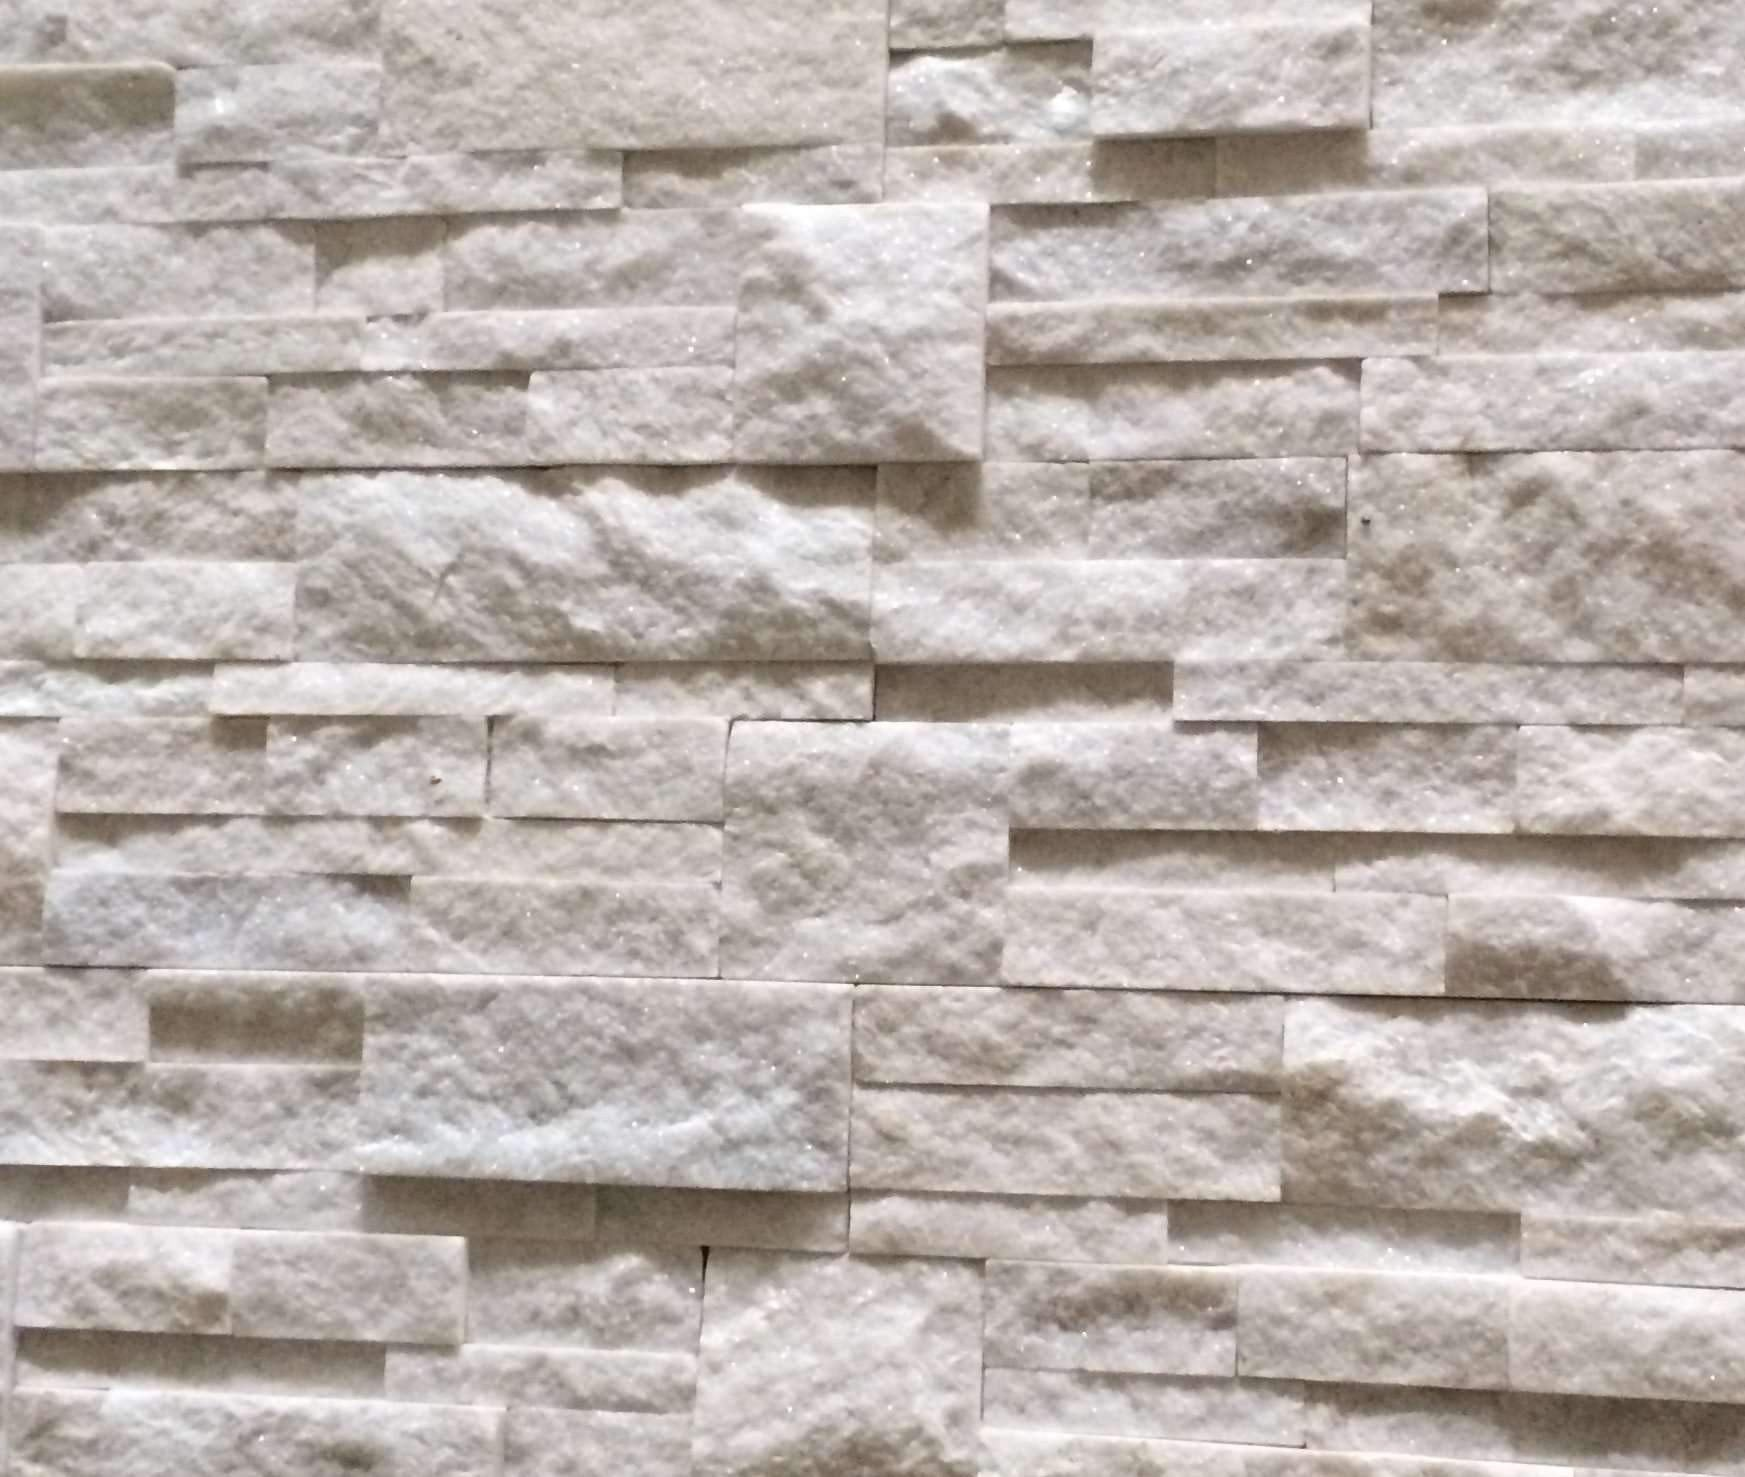 Elflin - Interlock Slate cheap stone veneer clearance - Discount Stones wholesale stone veneer, cheap brick veneer, cultured stone for sale